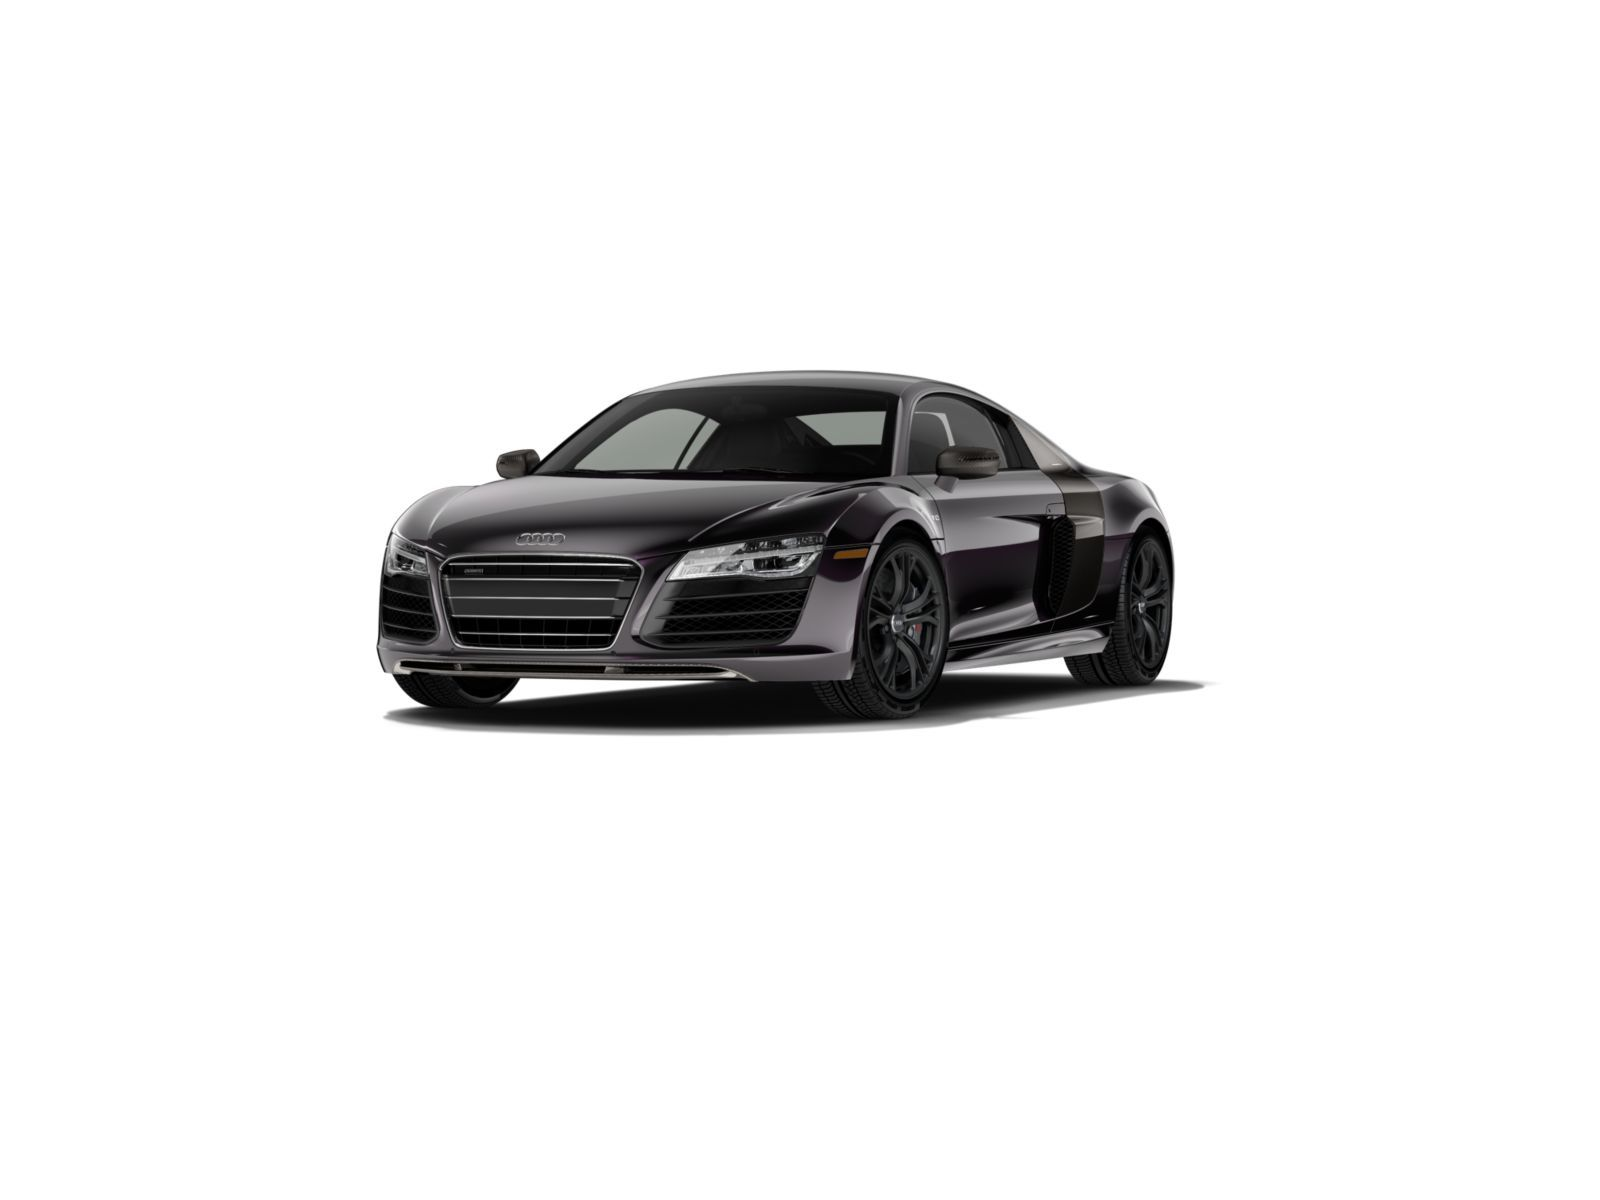 Build Your Own Audi R8 Coupe Car Configurator Audi Usa Audi R8 Spyder Audi R8 Audi Usa